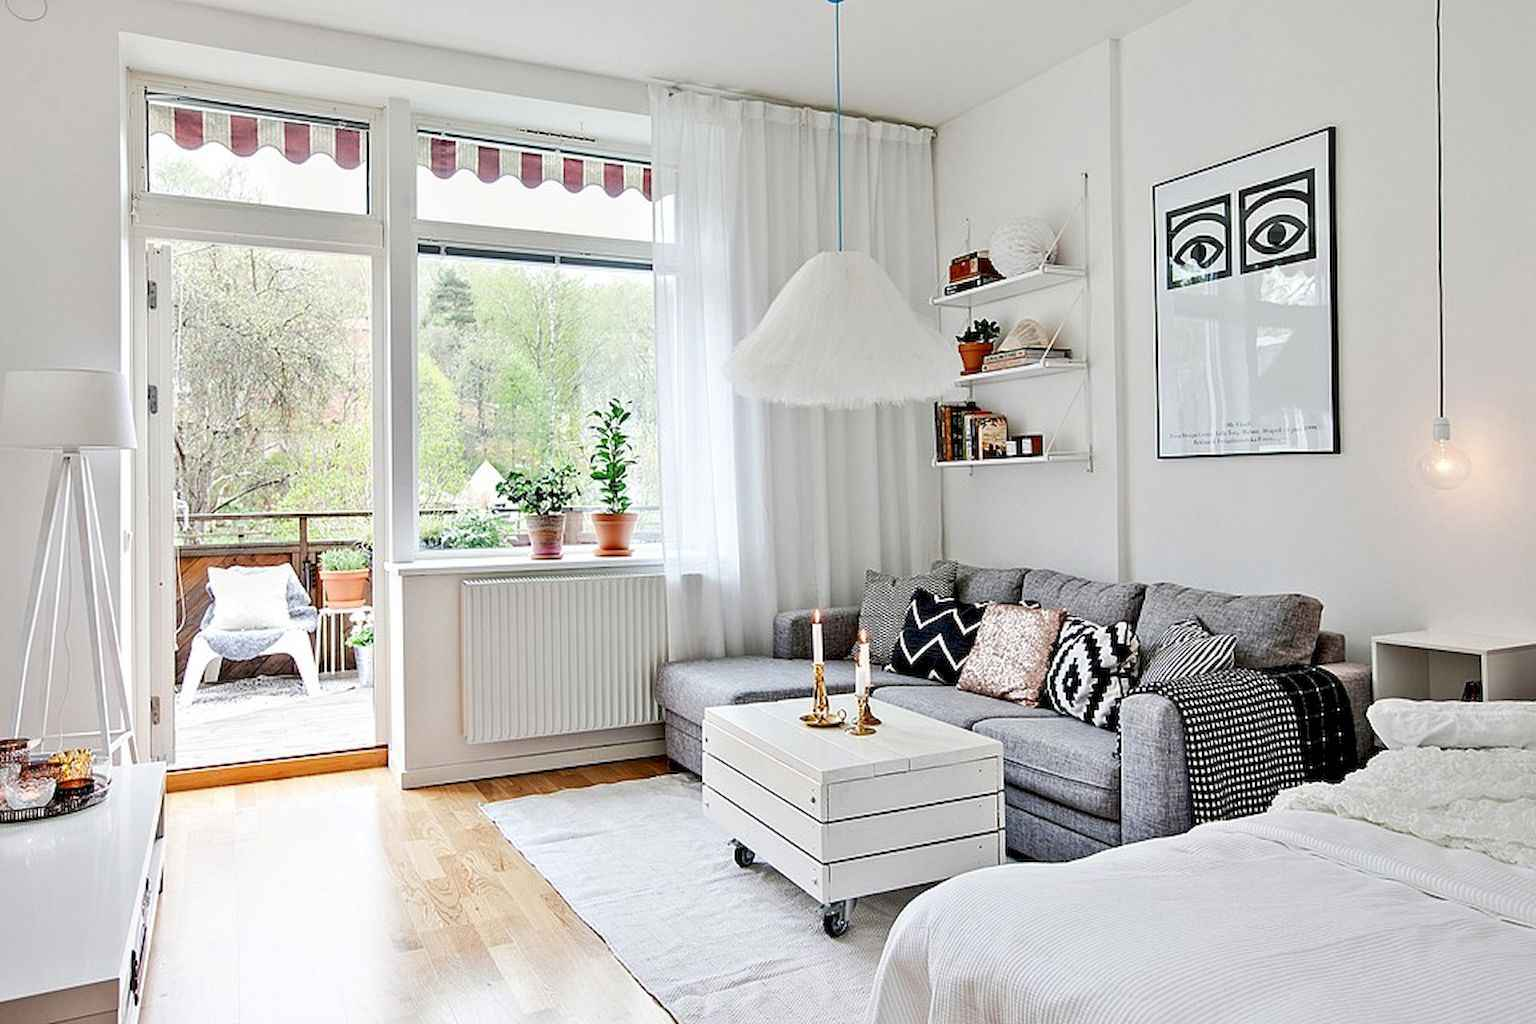 Cool small apartment decorating ideas on a budget (51)